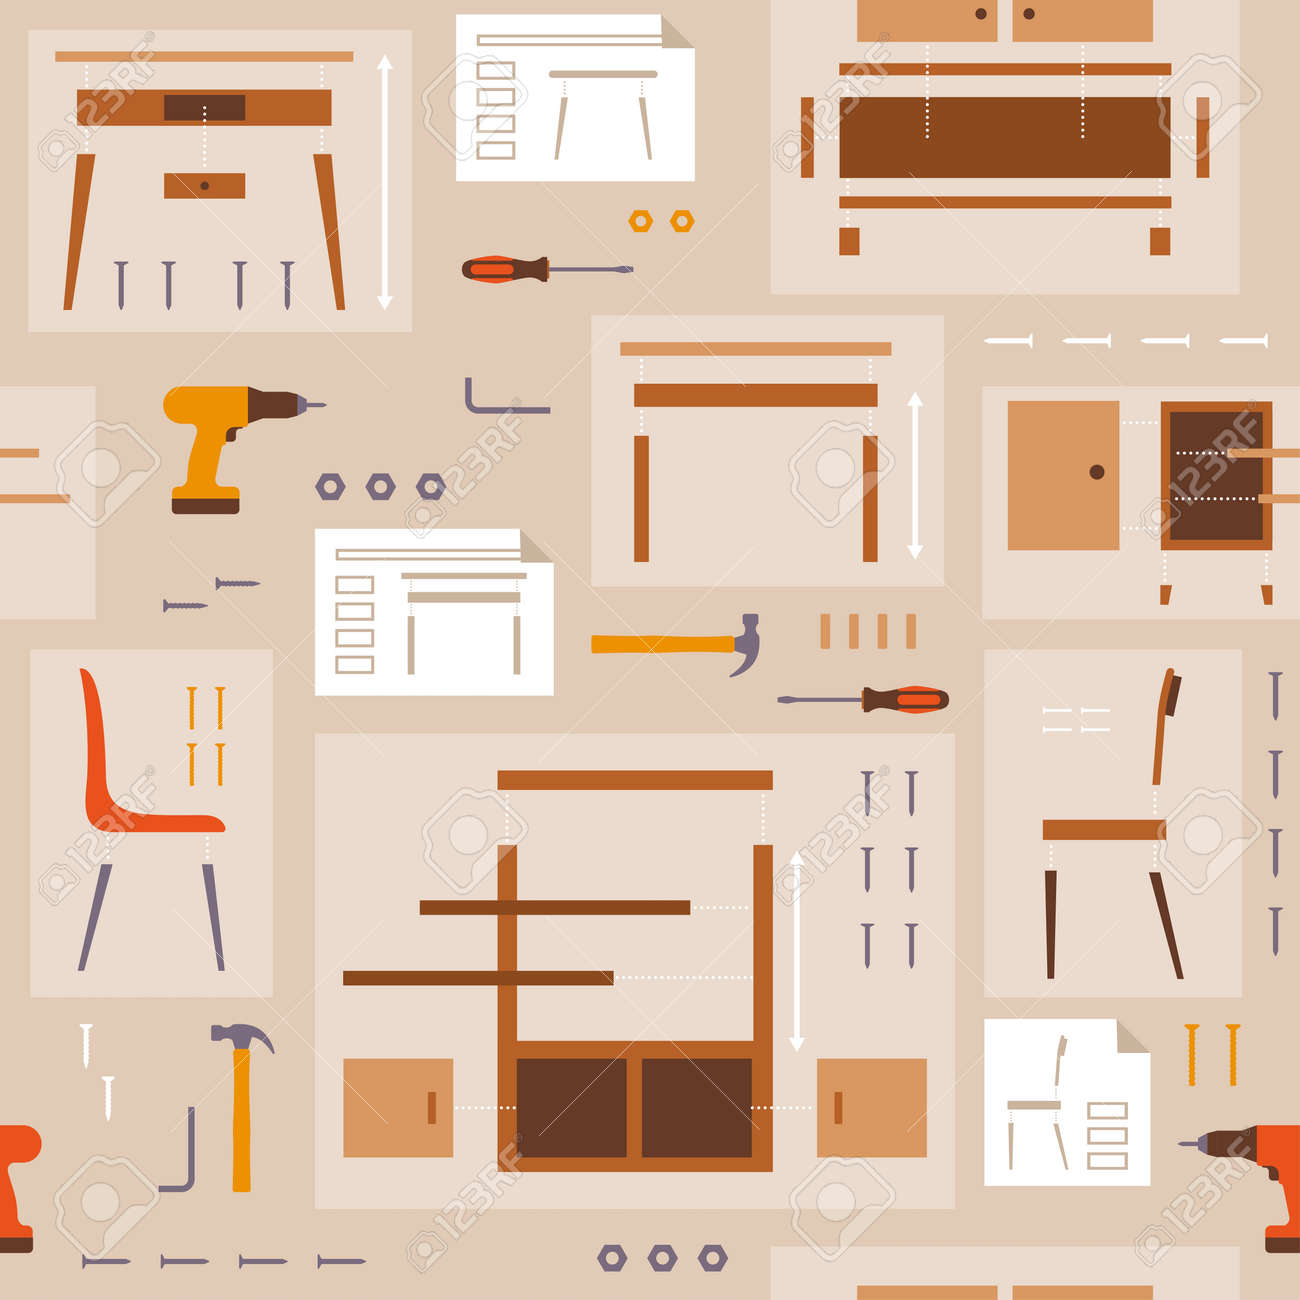 Furniture assembly and DIY pattern with tools - 169454612